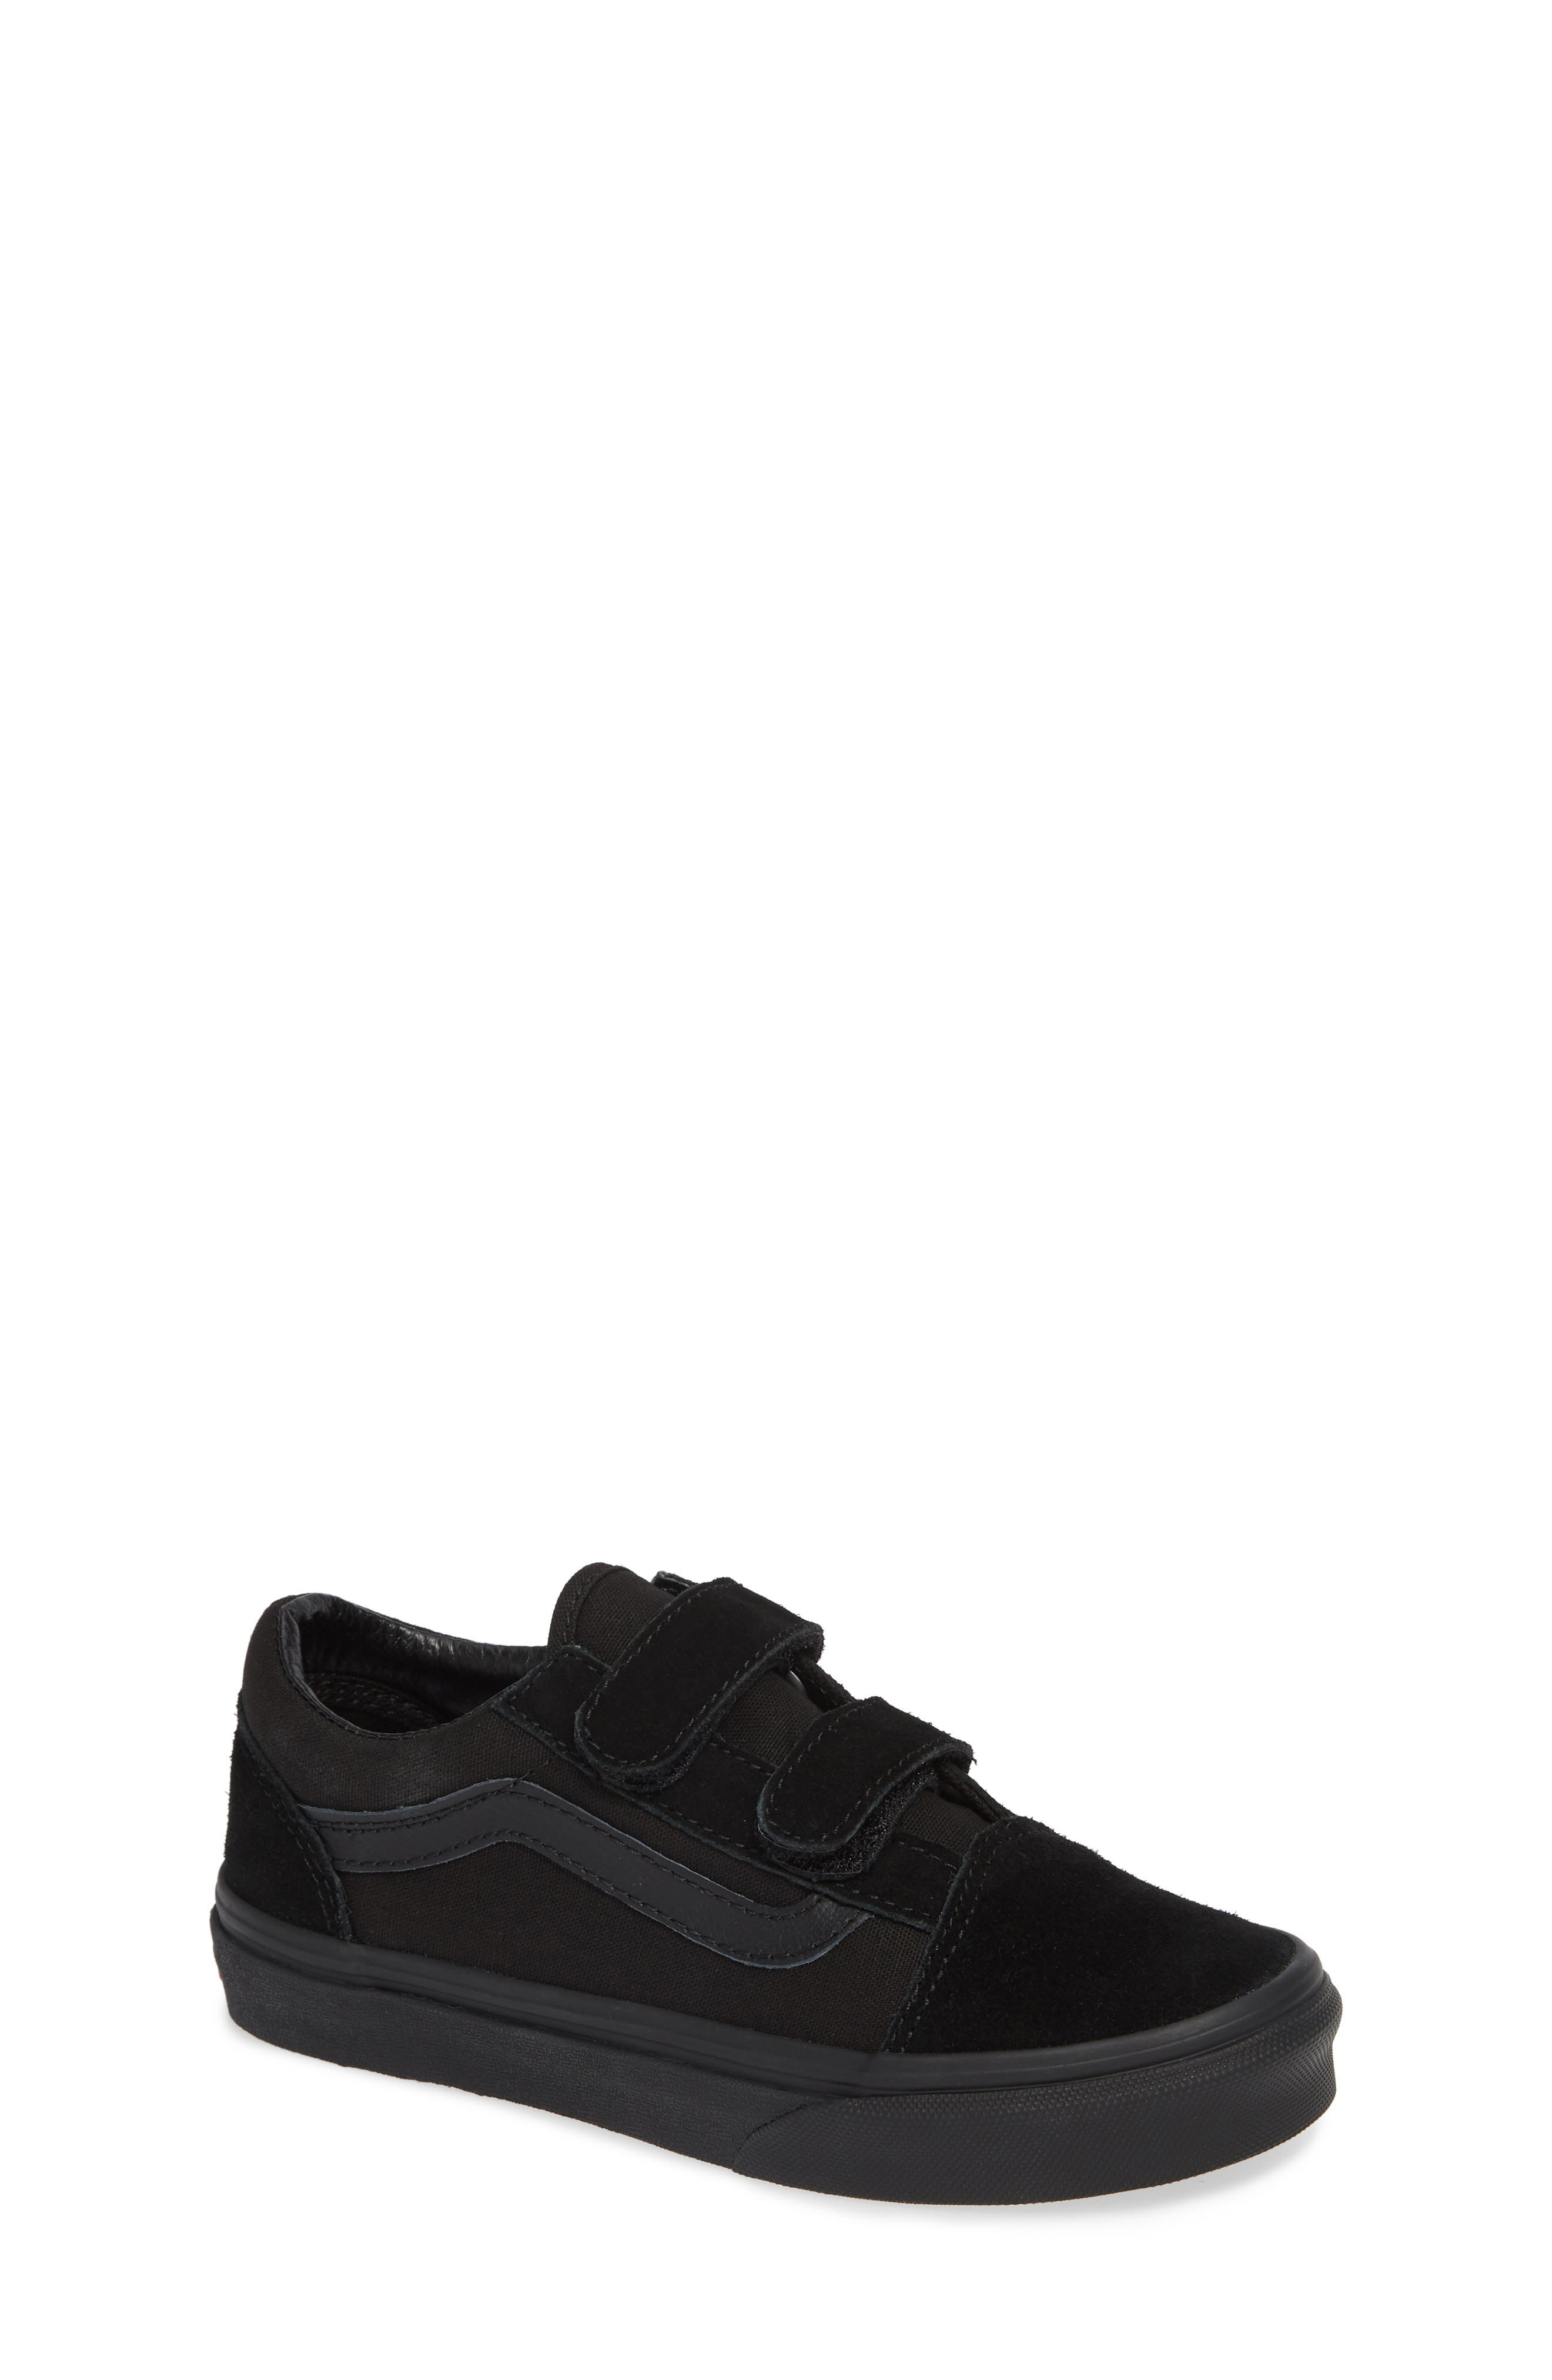 Toddler Boys Vans Old Skool V Sneaker Size 11 M  Black